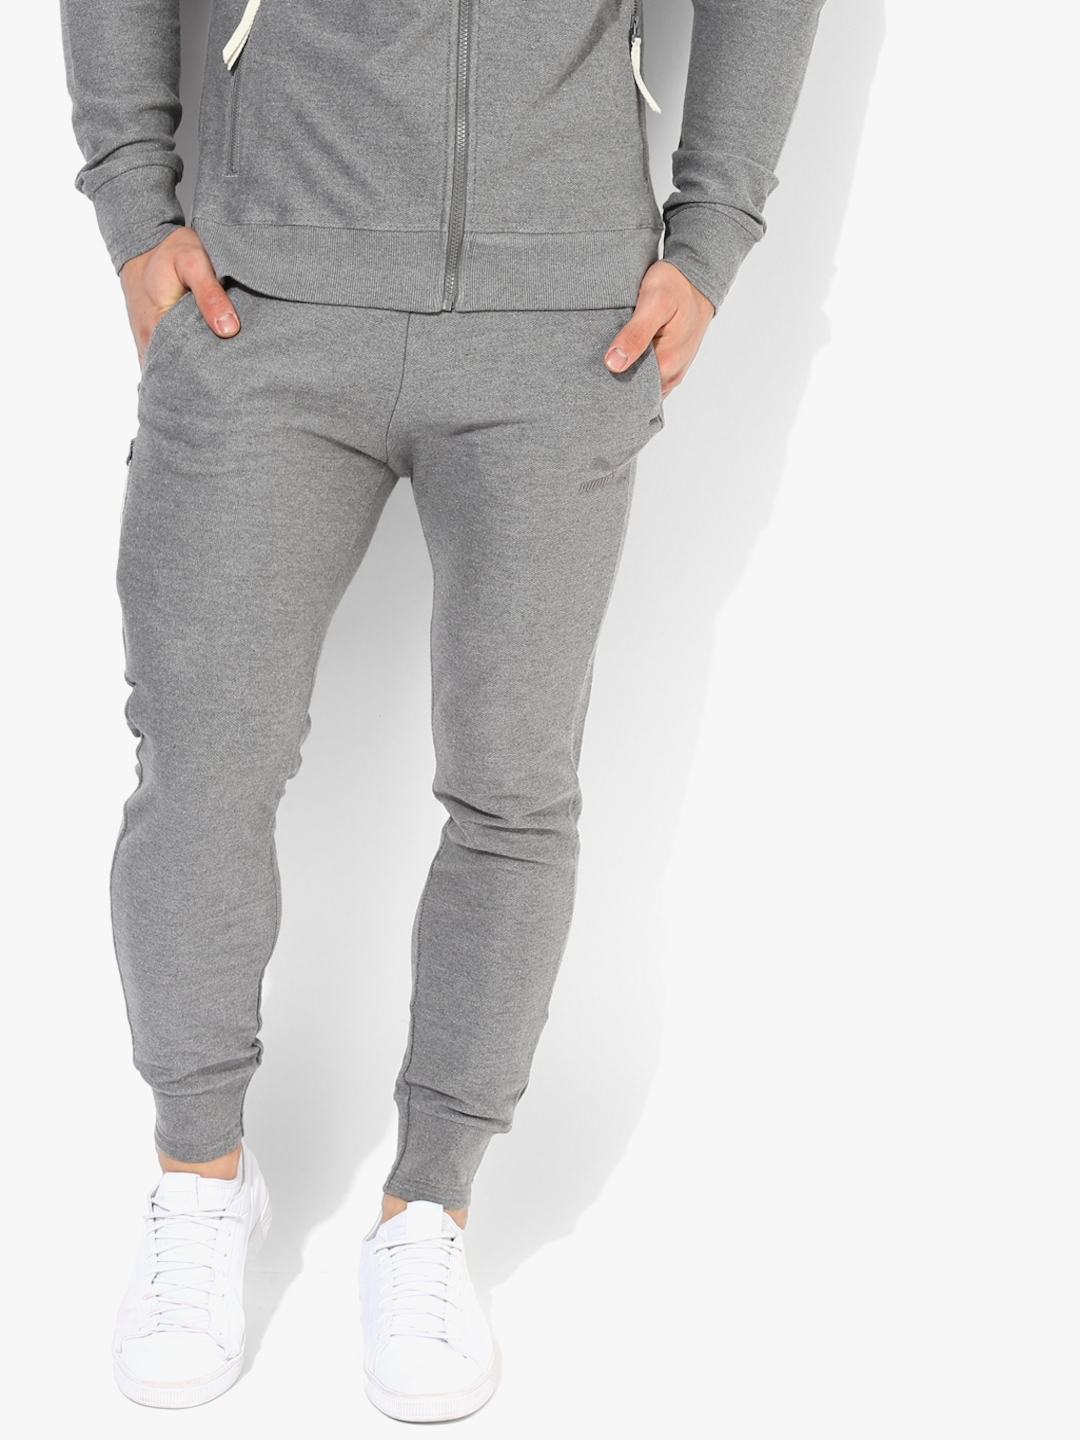 b2b2d4605b Buy One8 Vk Grey Joggers - Track Pants for Men 7634560 | Myntra